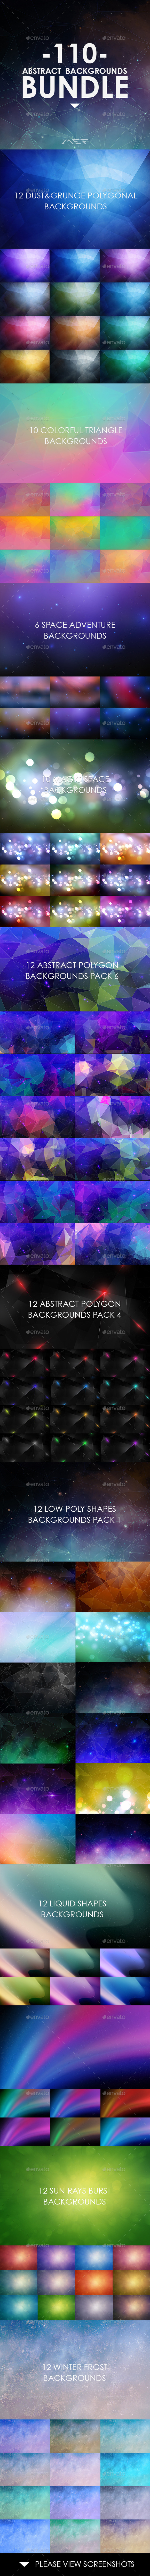 GraphicRiver 110 Abstract Backgrounds Bundle 10680088